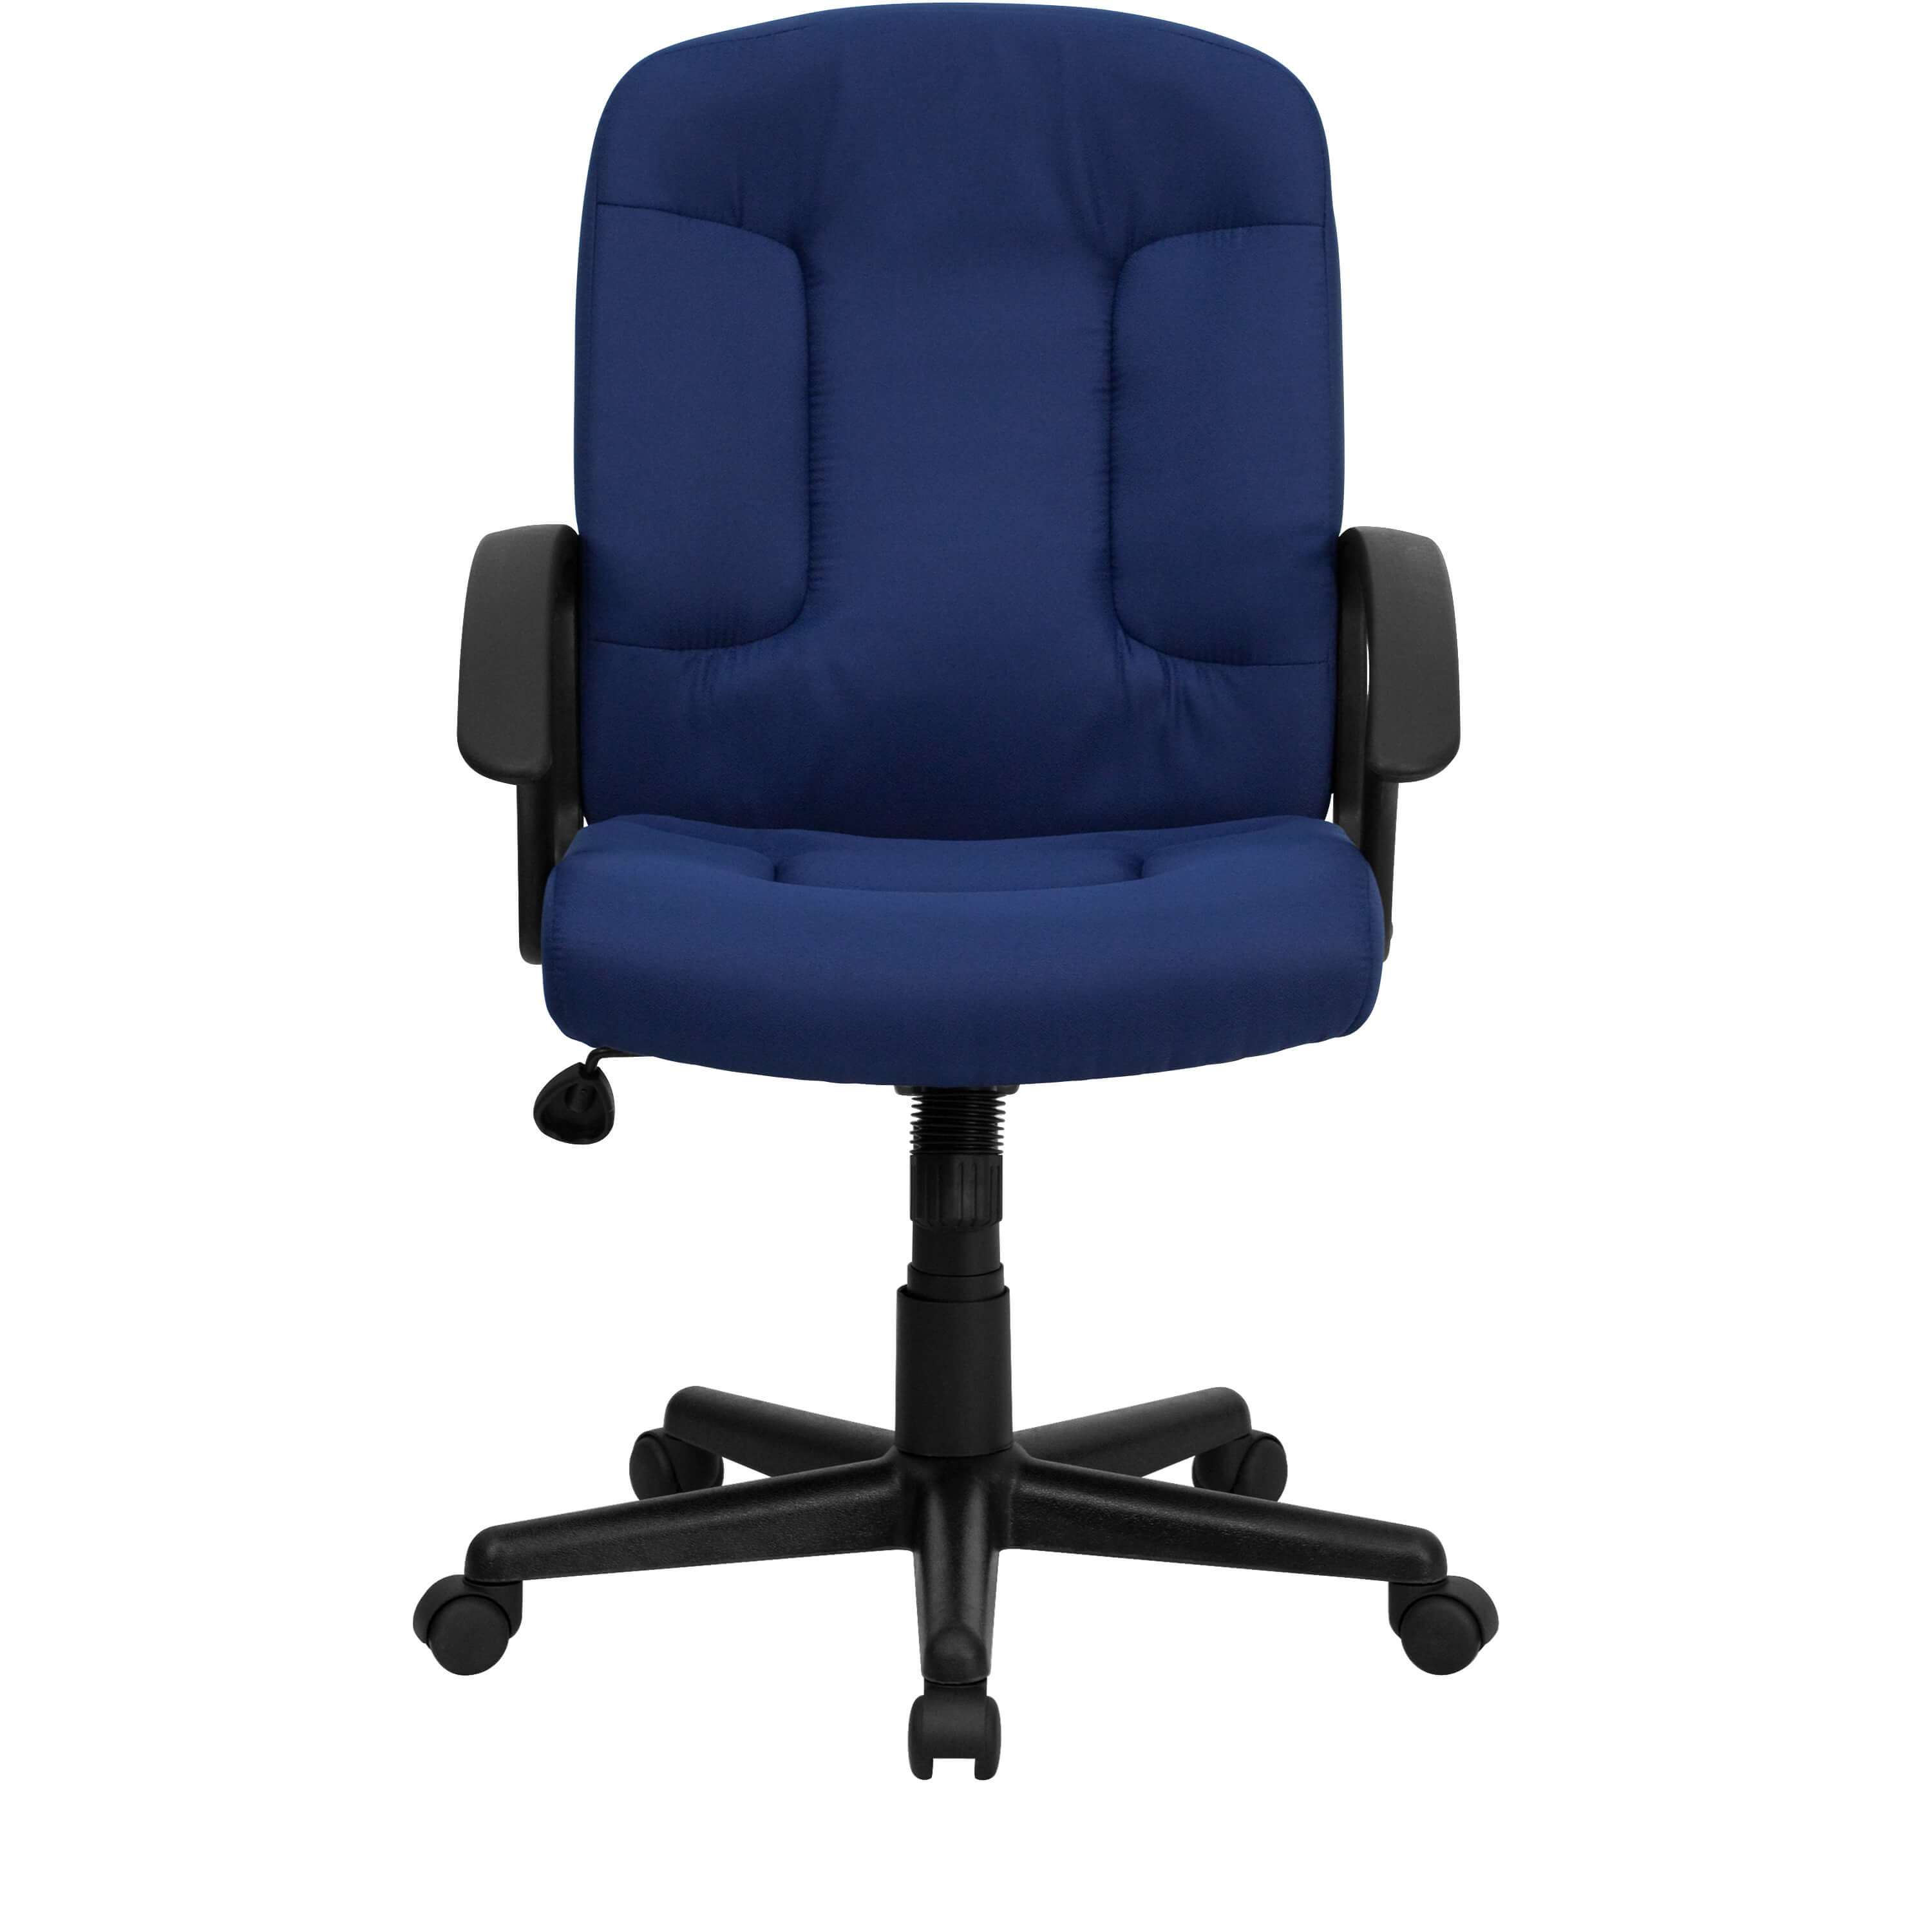 Cool desk chairs CUB GO ST 6 NVY GG FLA